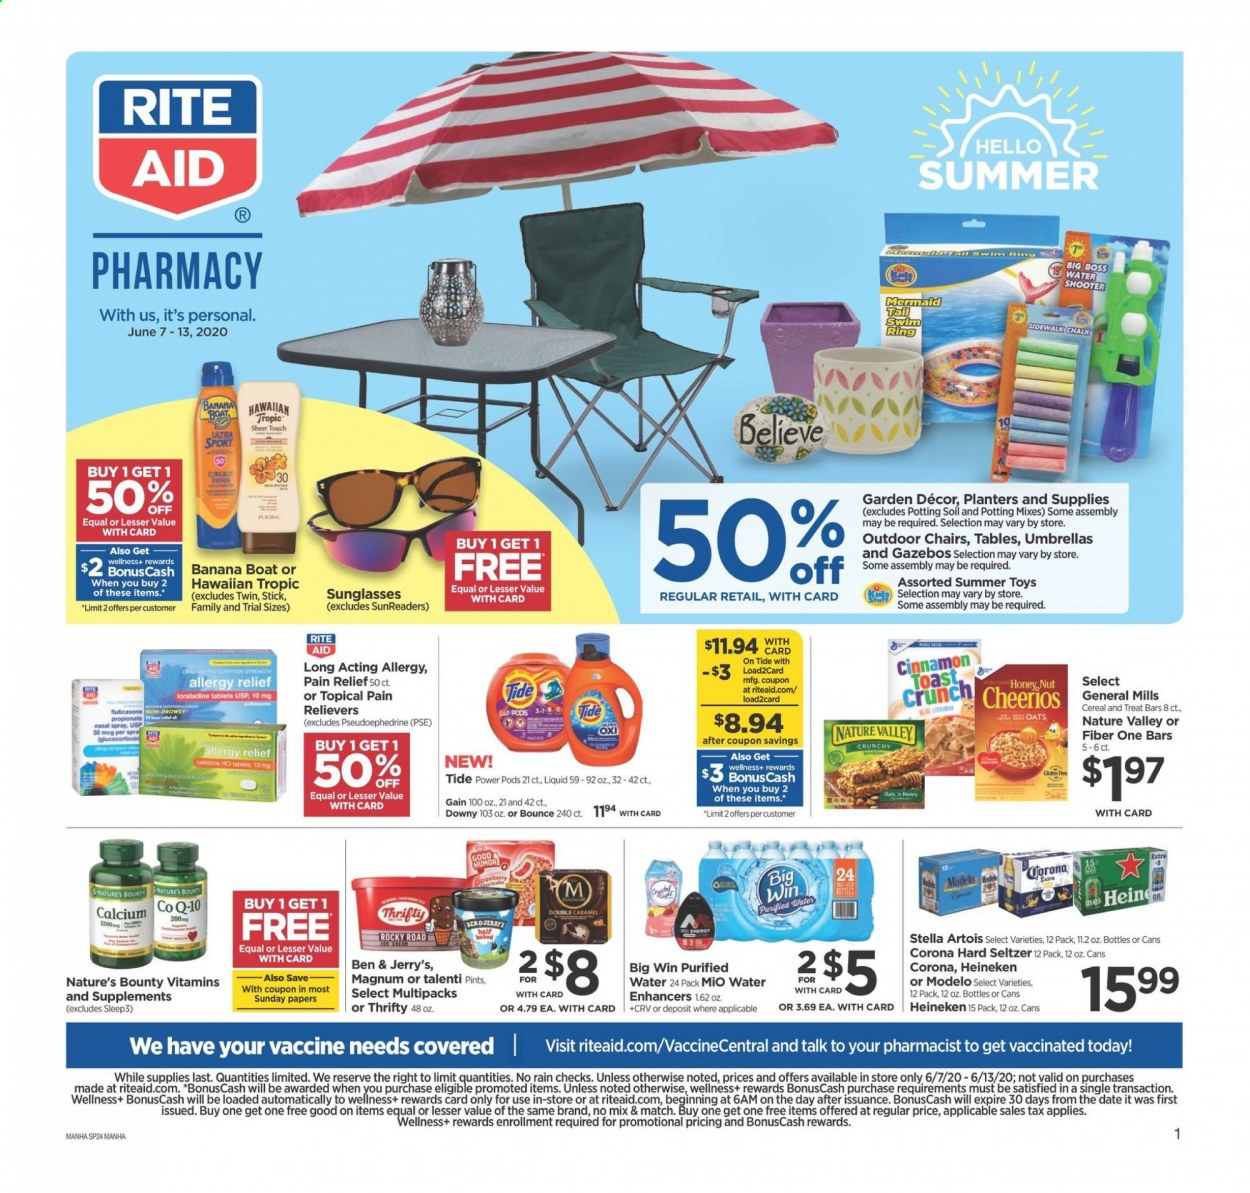 RITE AID Flyer - 06.07.2020 - 06.13.2020 - Sales products - Stella Artois, Corona, Magnum, Bounty, oats, strawberries, cereals, Cheerios, seltzer, water, Gain, Downy, Tide, Hugo Boss, sunglasses, toys, Pain Relief, calcium, Nature's Bounty. Page 1.